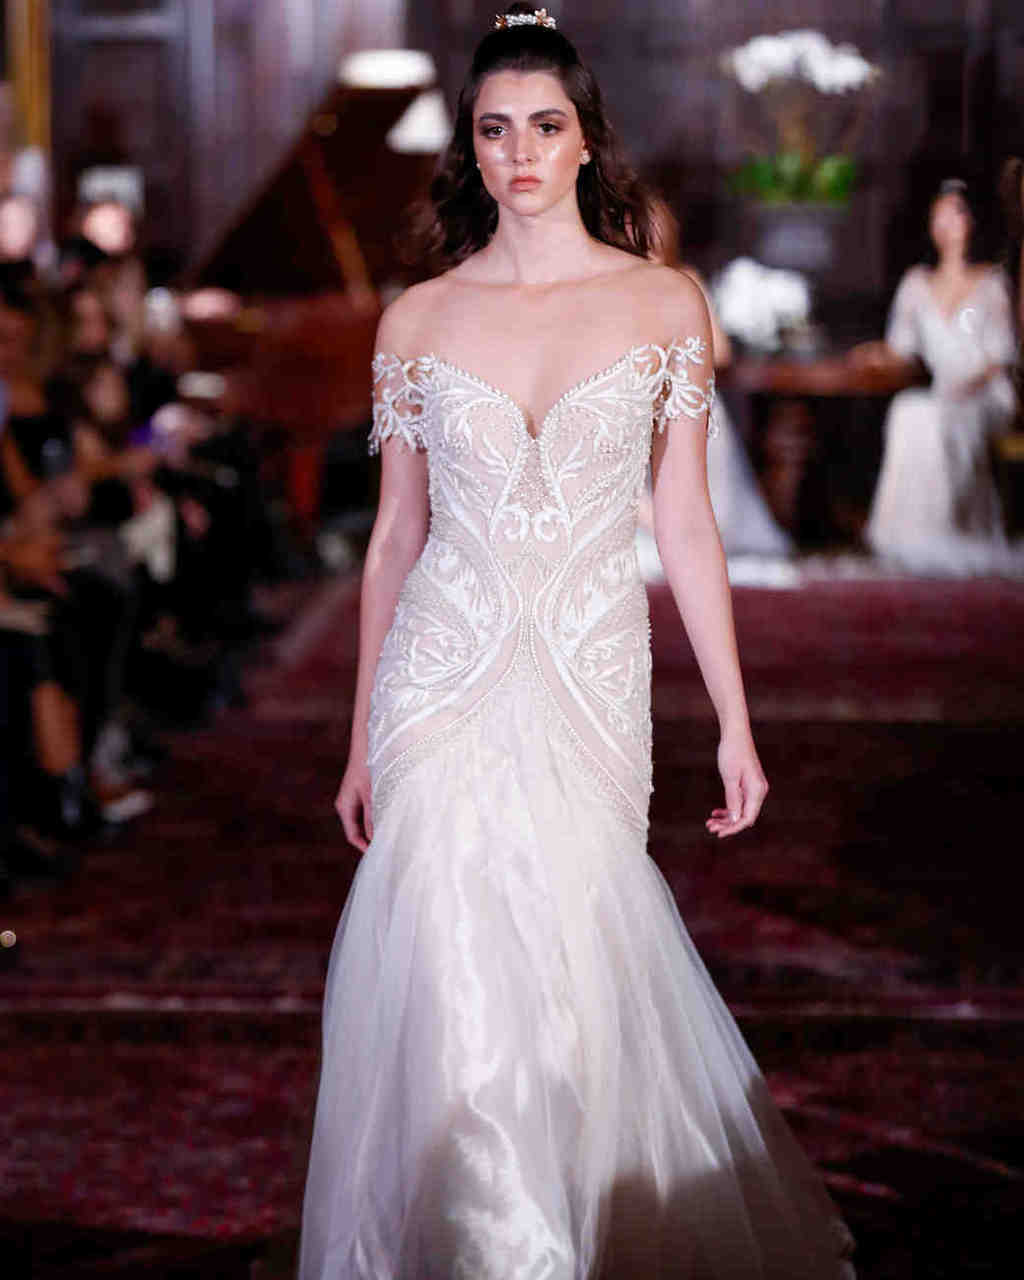 julie-vino-wedding-dress-fall2017-6203351-003_vert